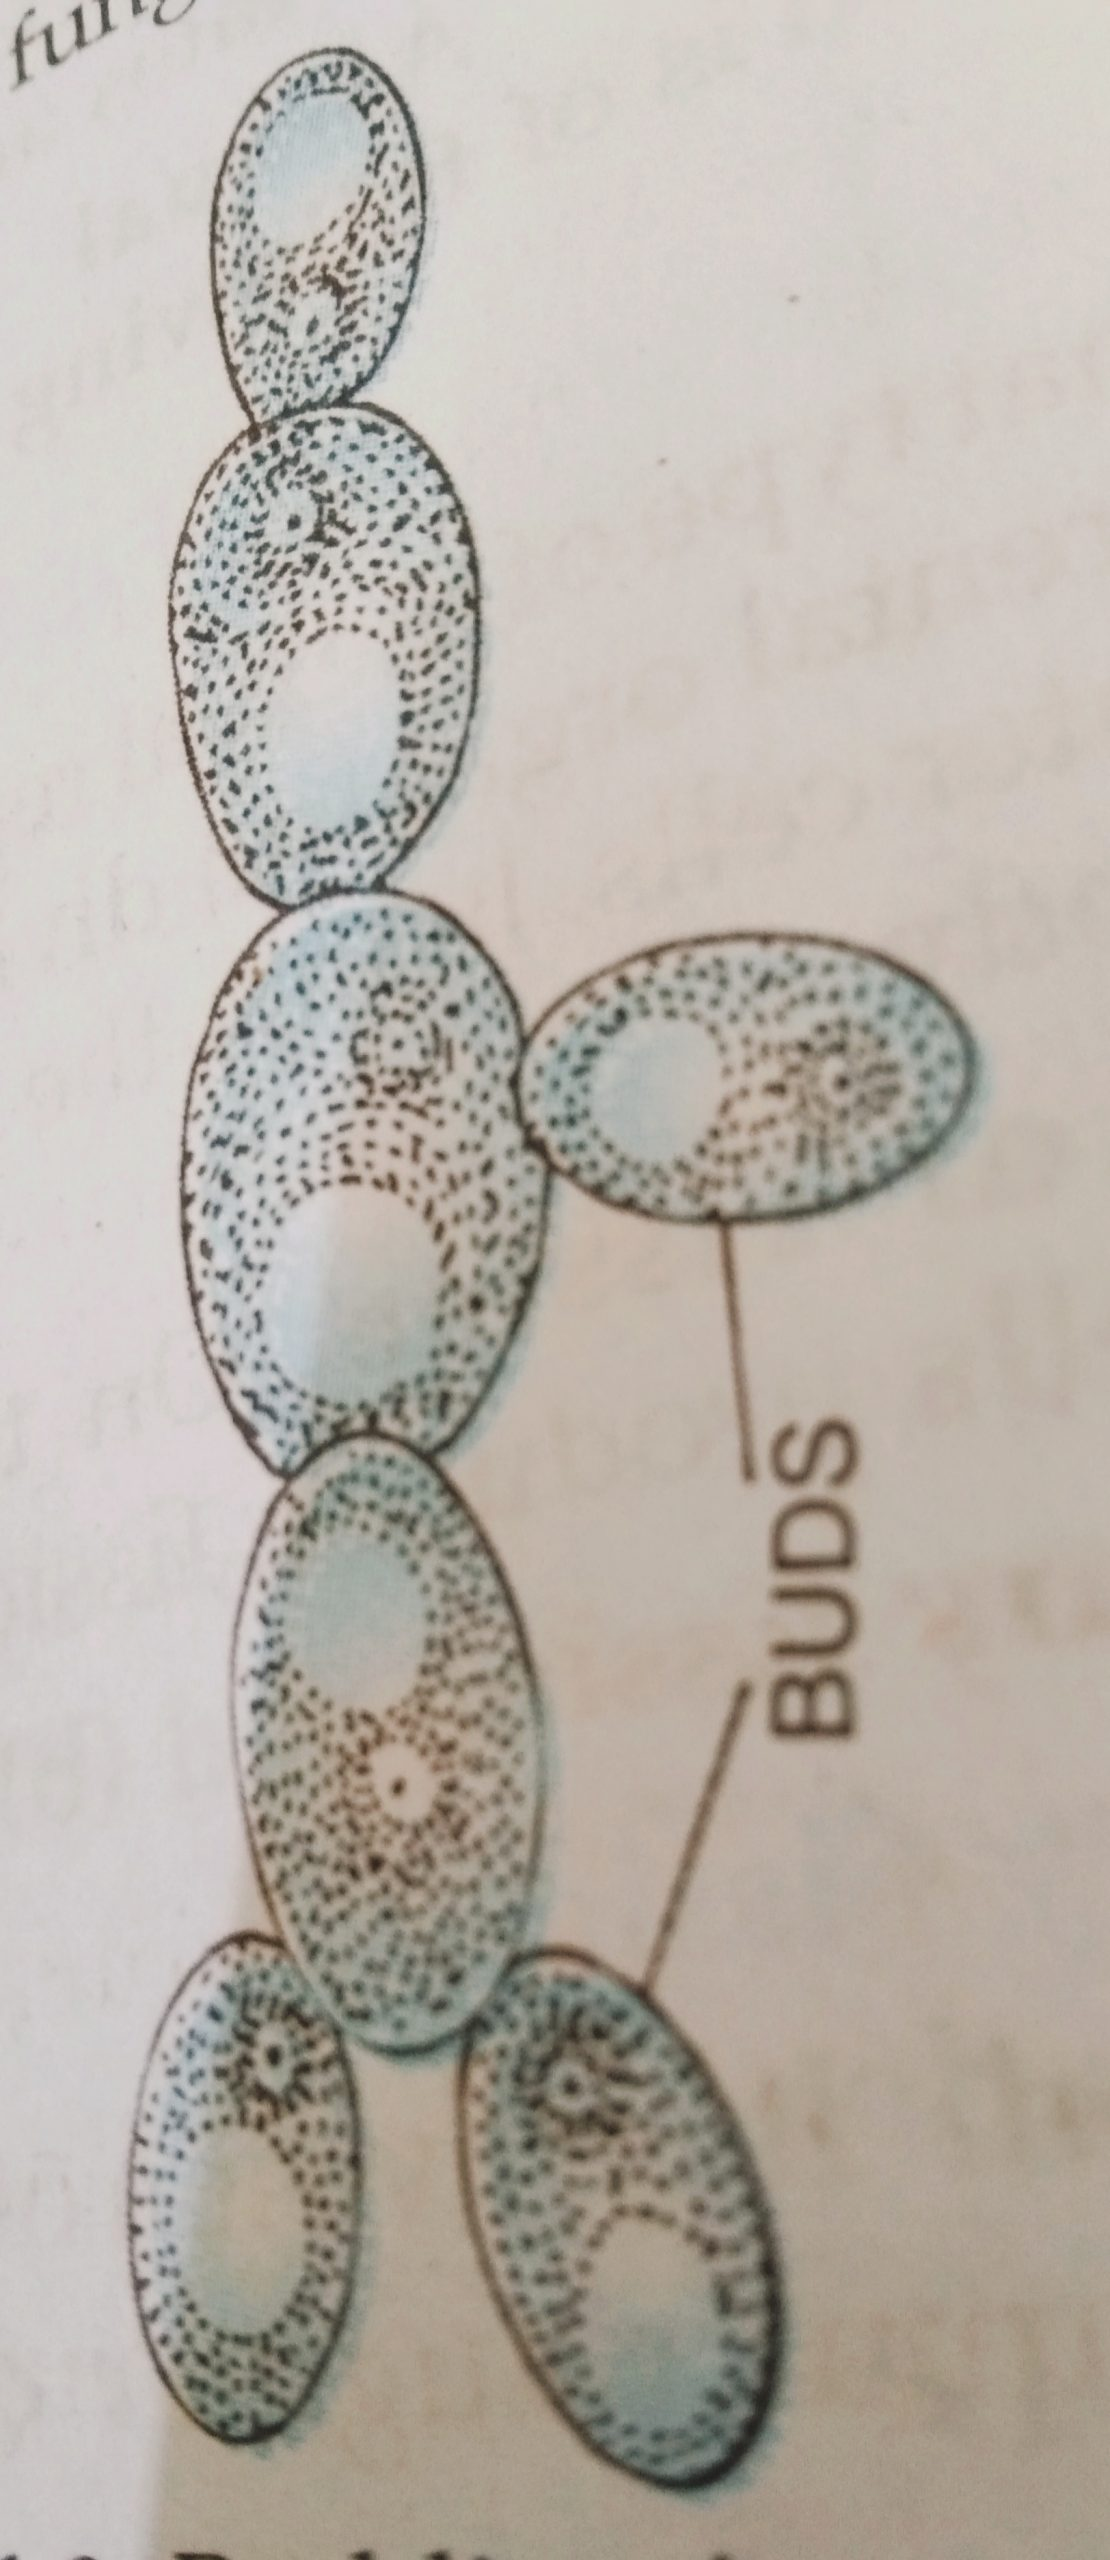 Budding in Yeast with diagram